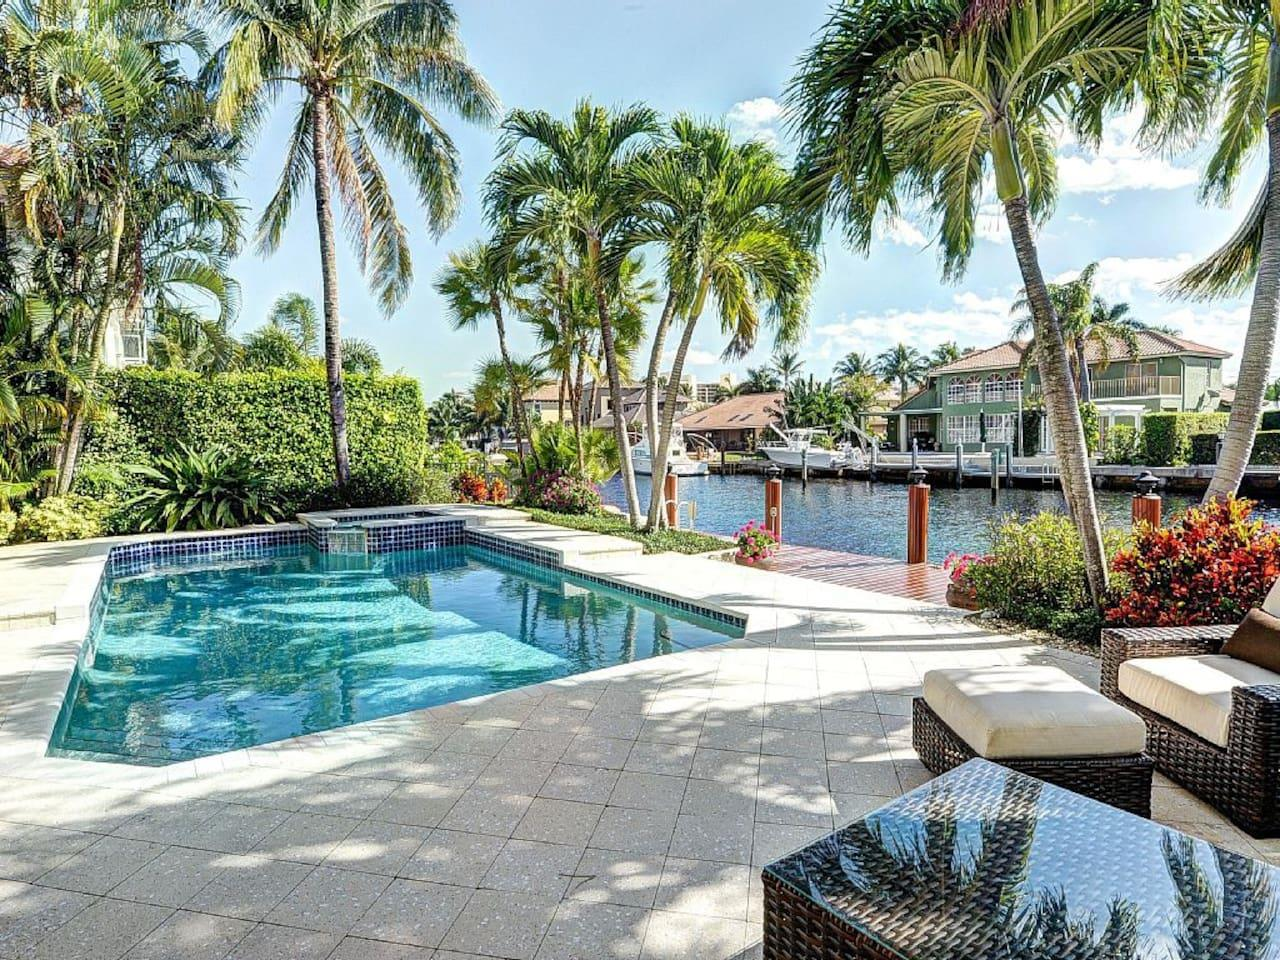 Delray Beach Waterfront villa Vacation Rentals Florida heated pool & jacuzzi